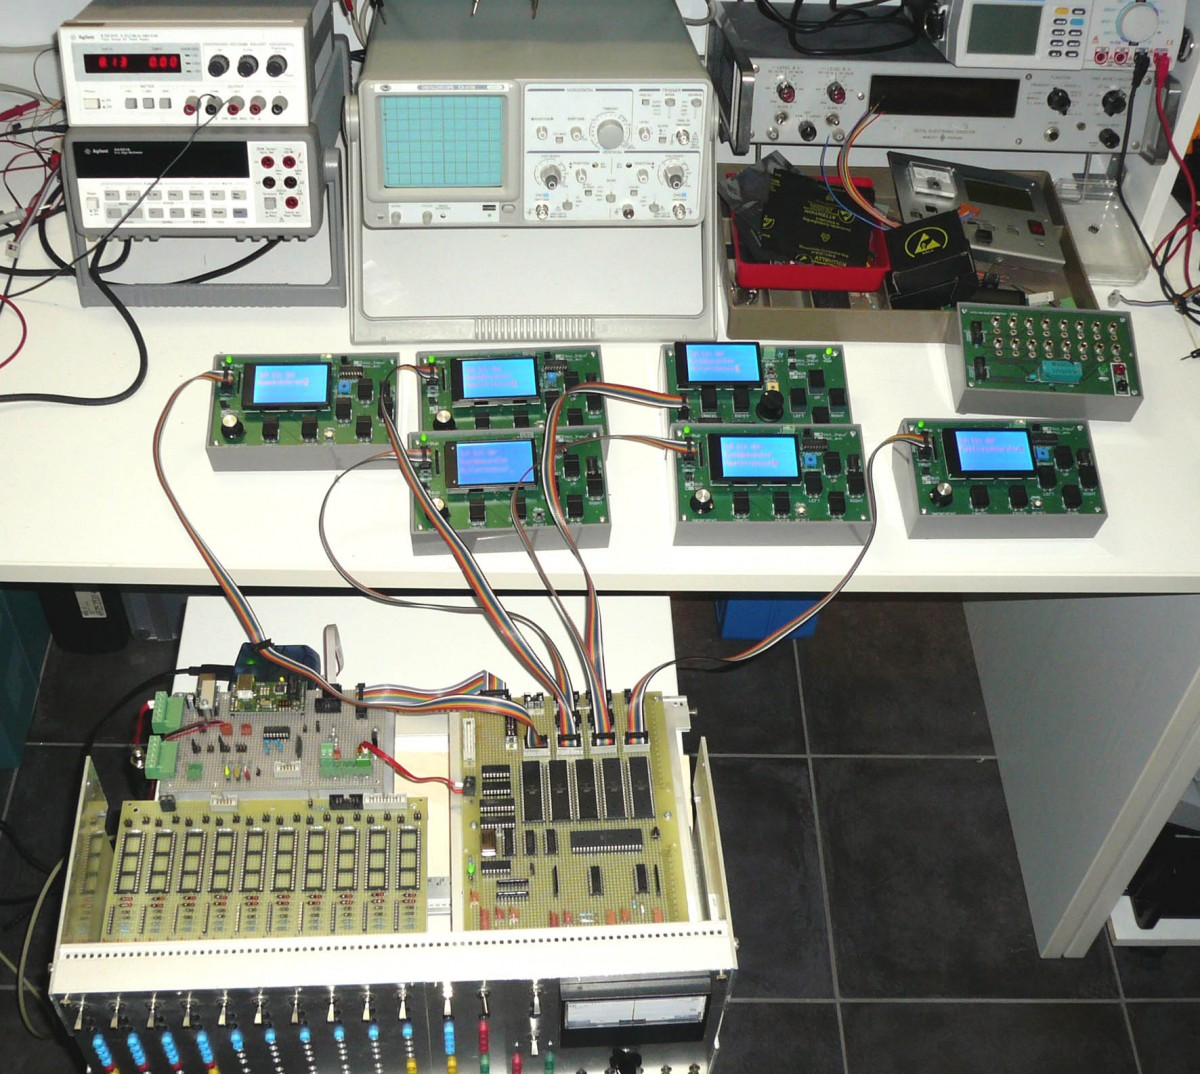 Real work is shown here at the digital analog computer—bring-up and debugging of the master controller board. Each of the six microcontrollers is connected to a general-purpose human-interface module.